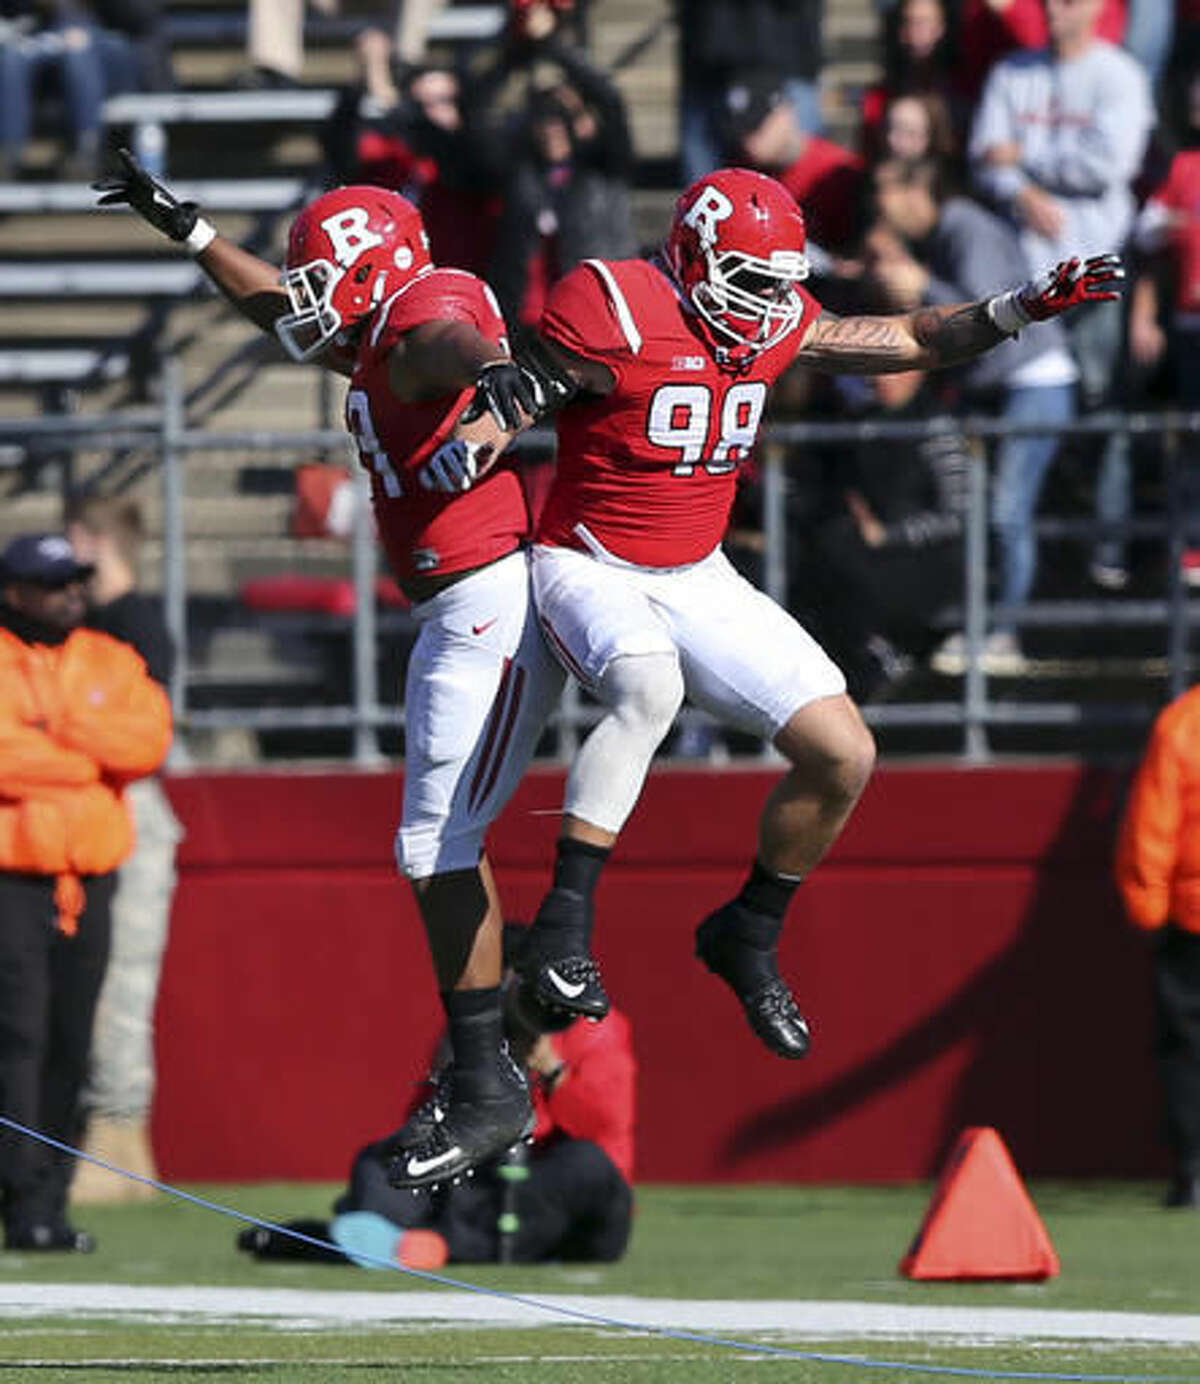 Rutgers defensive linemen Darnell Davis (59) and Jimmy Hogan (98) celebrate after Davis ran a fumble for a touchdown during the first half of a NCAA college football game against Indiana Saturday, Nov. 5, 2016, in Piscataway, N.J. (AP Photo/Mel Evans)